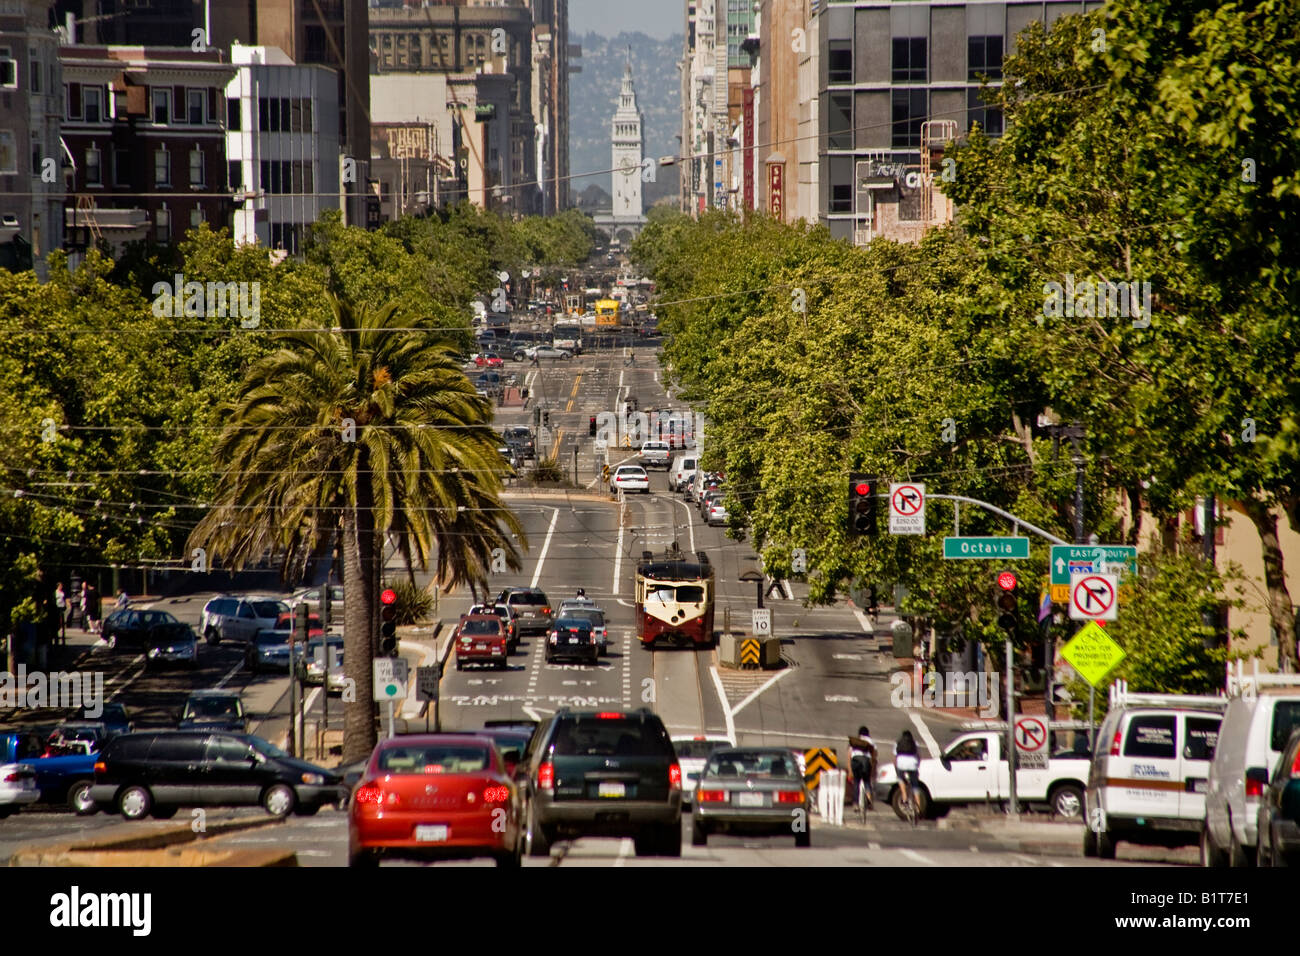 Trolleys mix with regular traffic on Market Street in San Francisco Note the Ferry Building in background - Stock Image